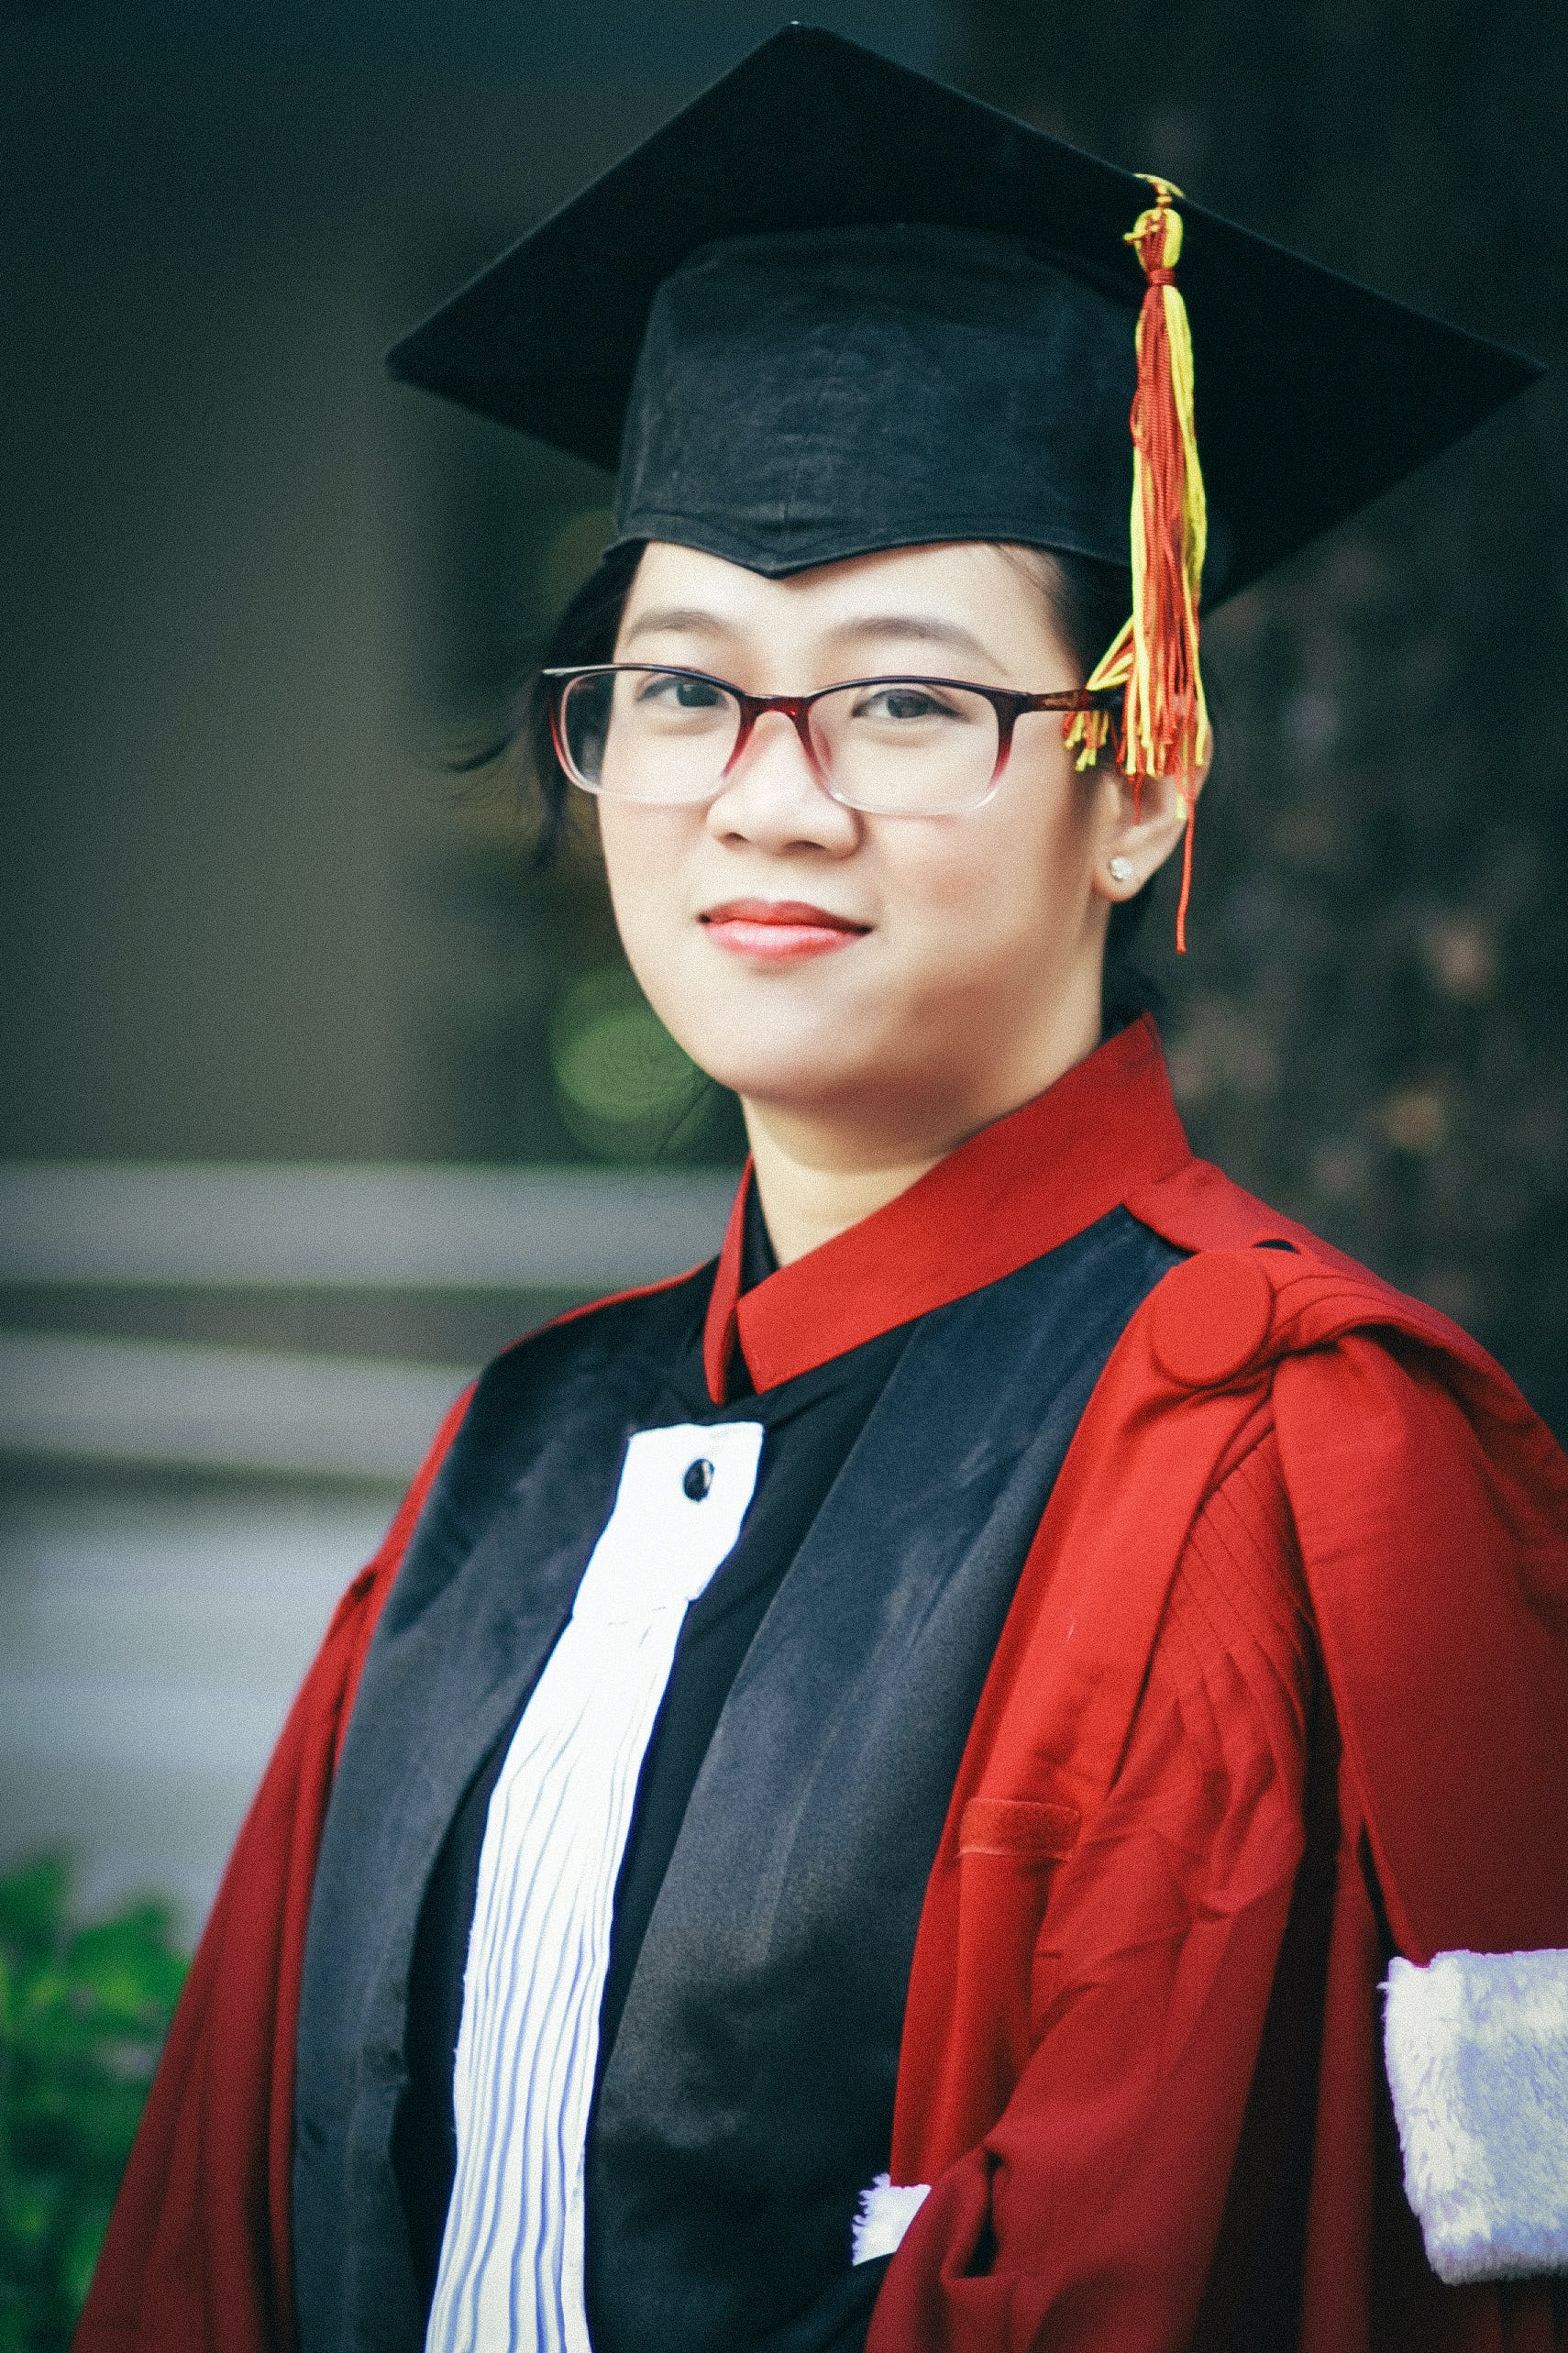 Photo of Woman Wearing Academic Dress